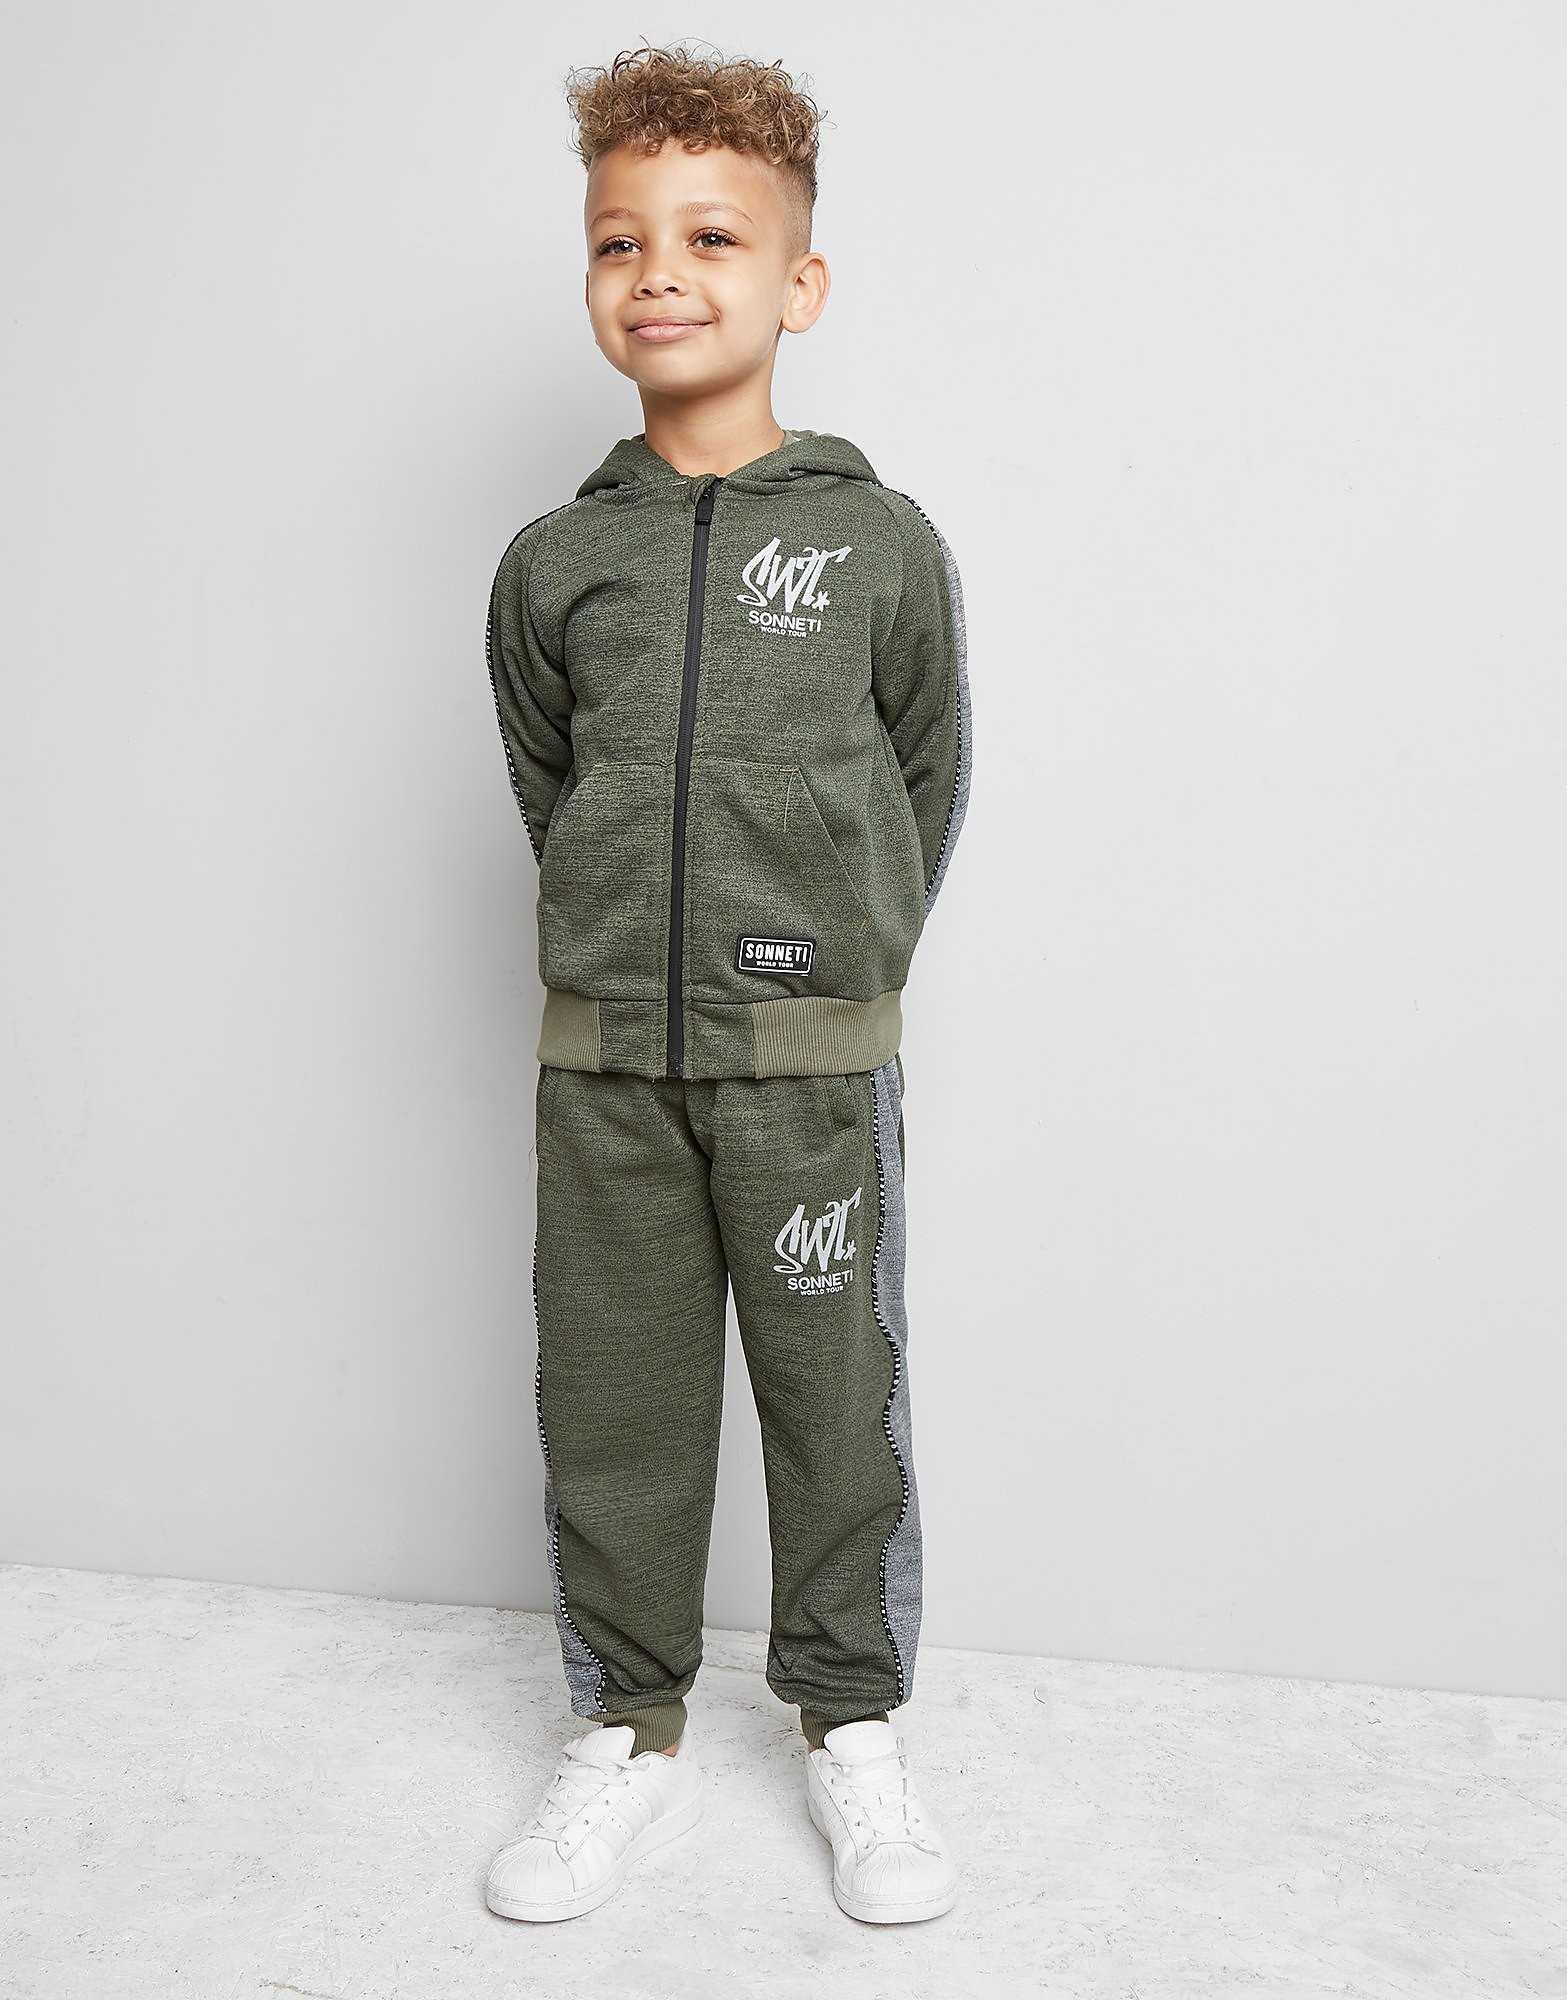 Sonneti Mini Welby Full Zip Tracksuit Children